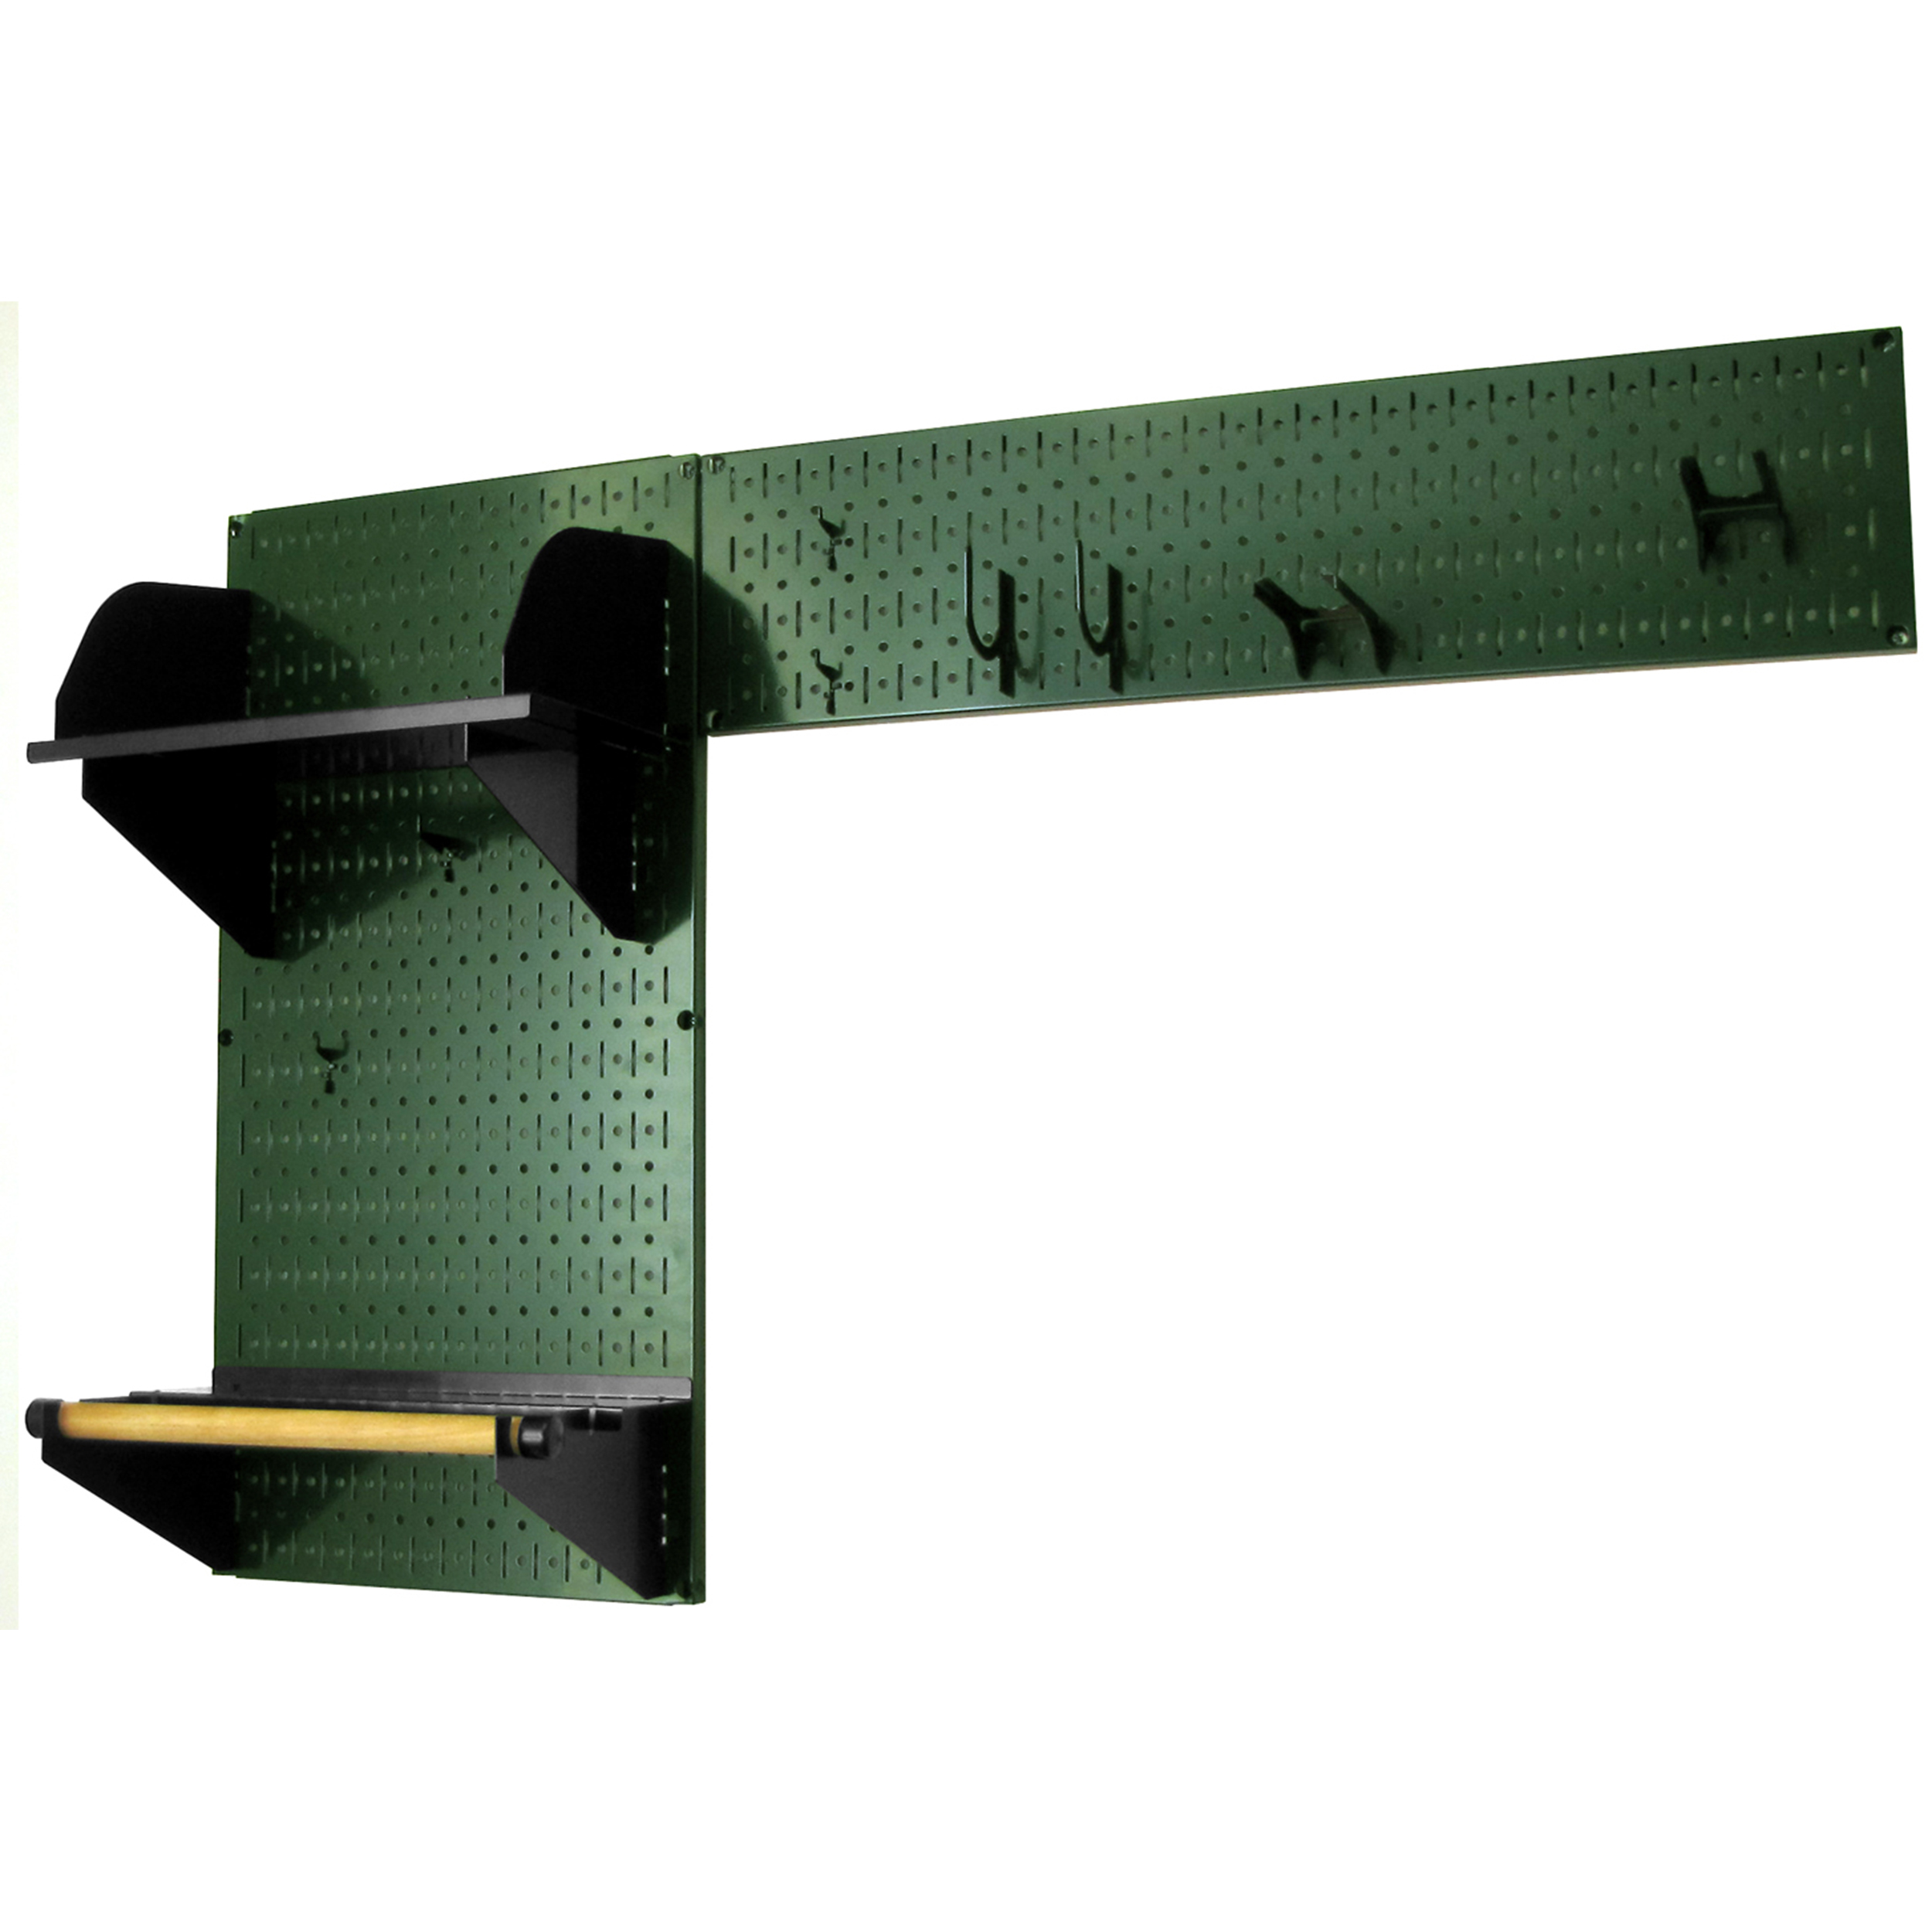 Pegboard Garden Tool Board Organizer with Green Pegboard and Black Accessories